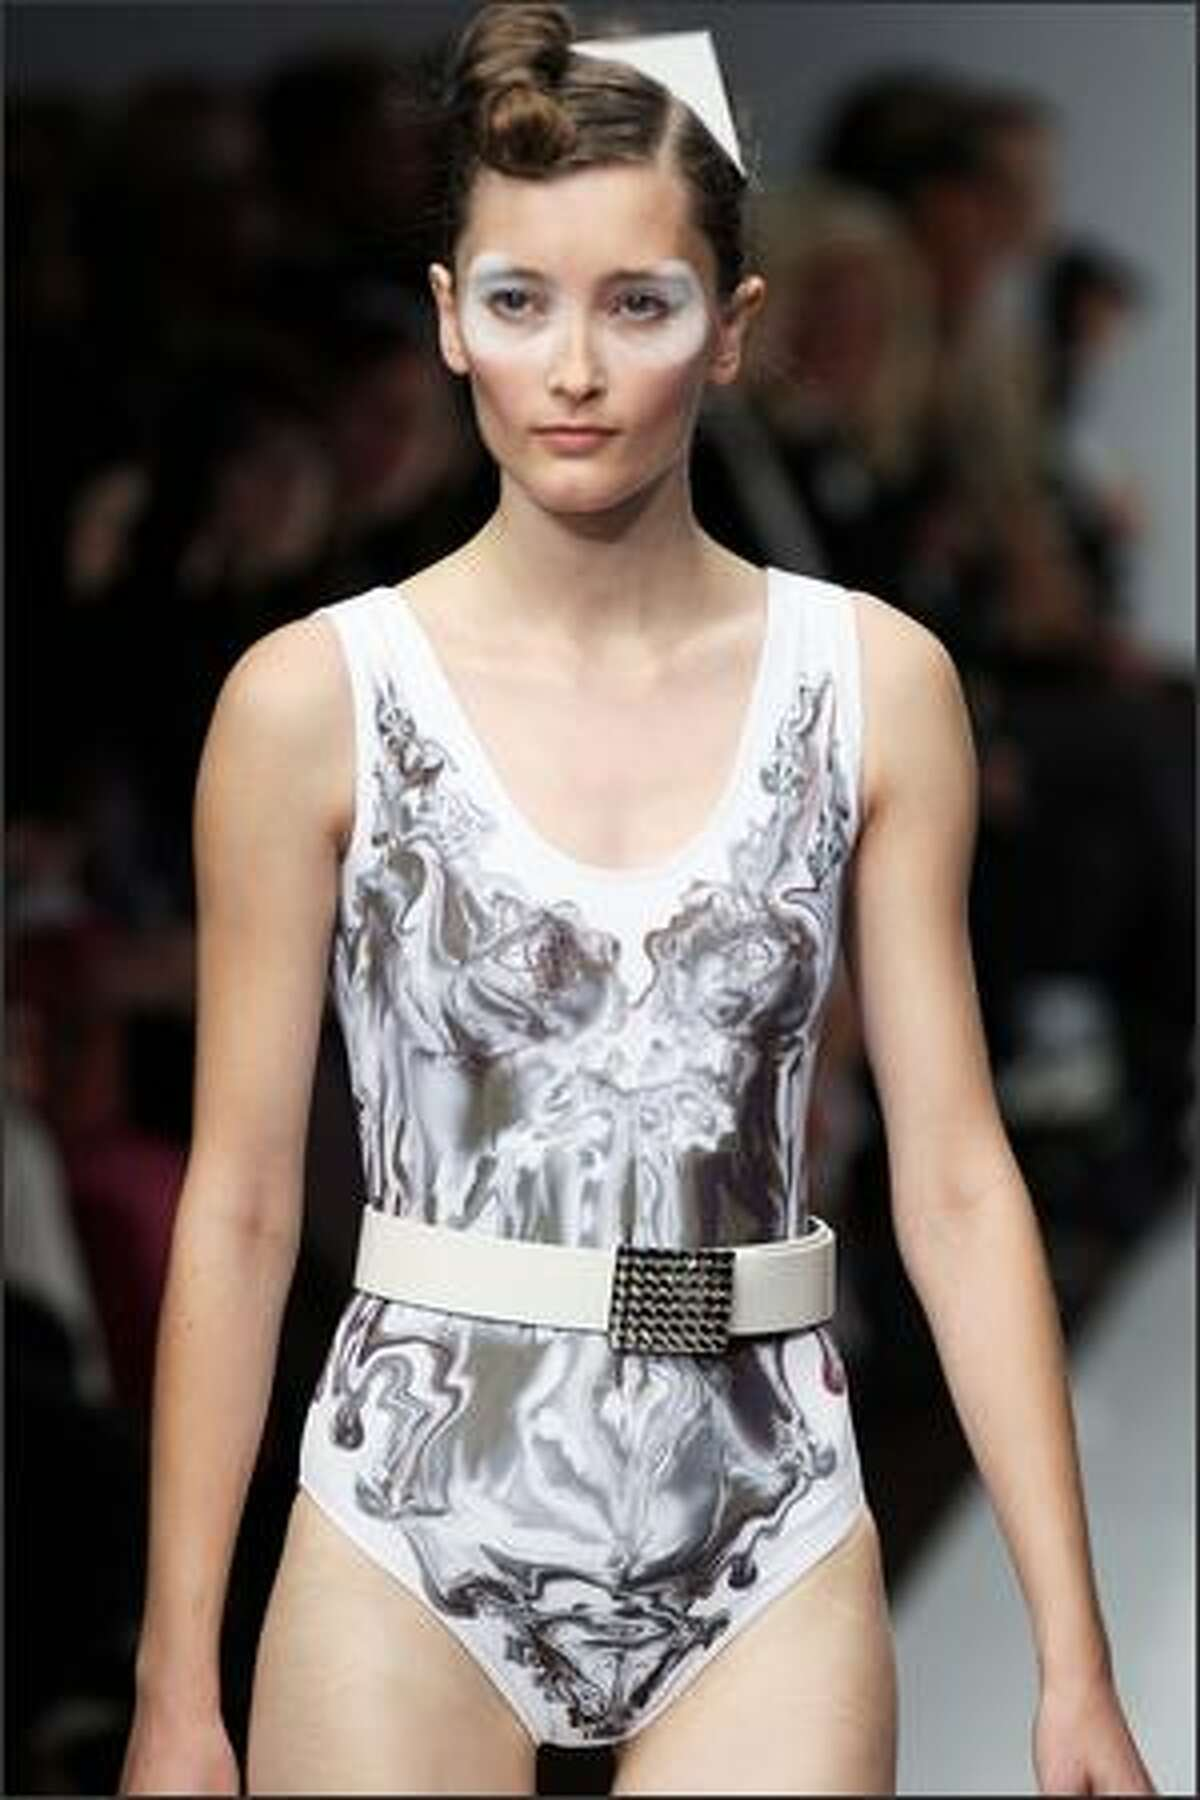 A model presents a creation by Rusian designer Igor Chapurin during Spring/Summer 2008 ready-to-wear collection show in Paris, 06 October 2007.